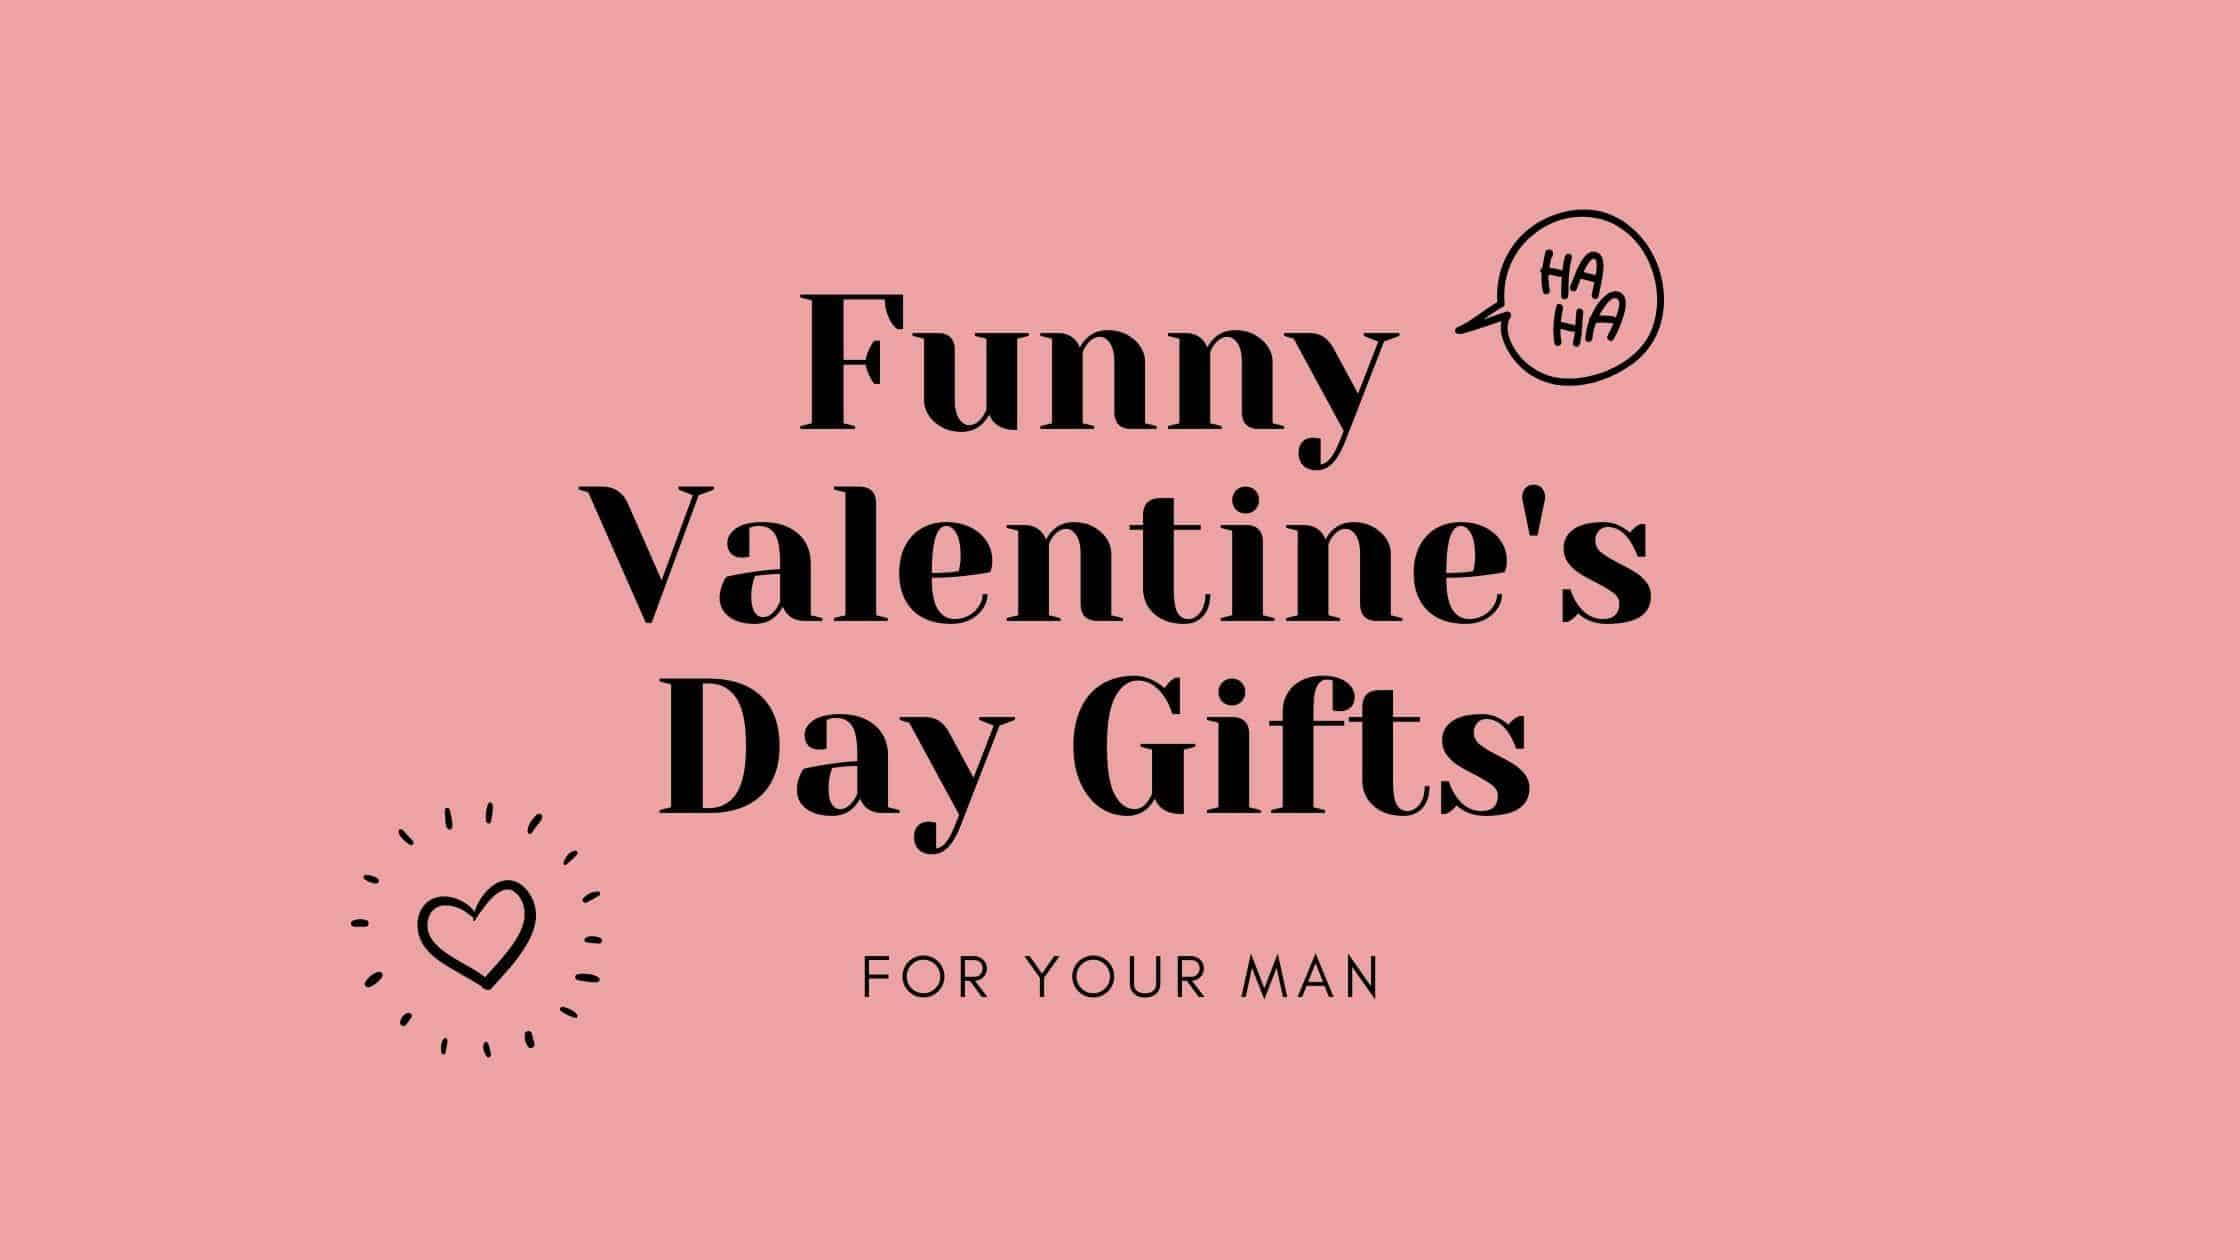 20 Funny Valentine S Day Gifts For Him In 2021 365canvas Blog